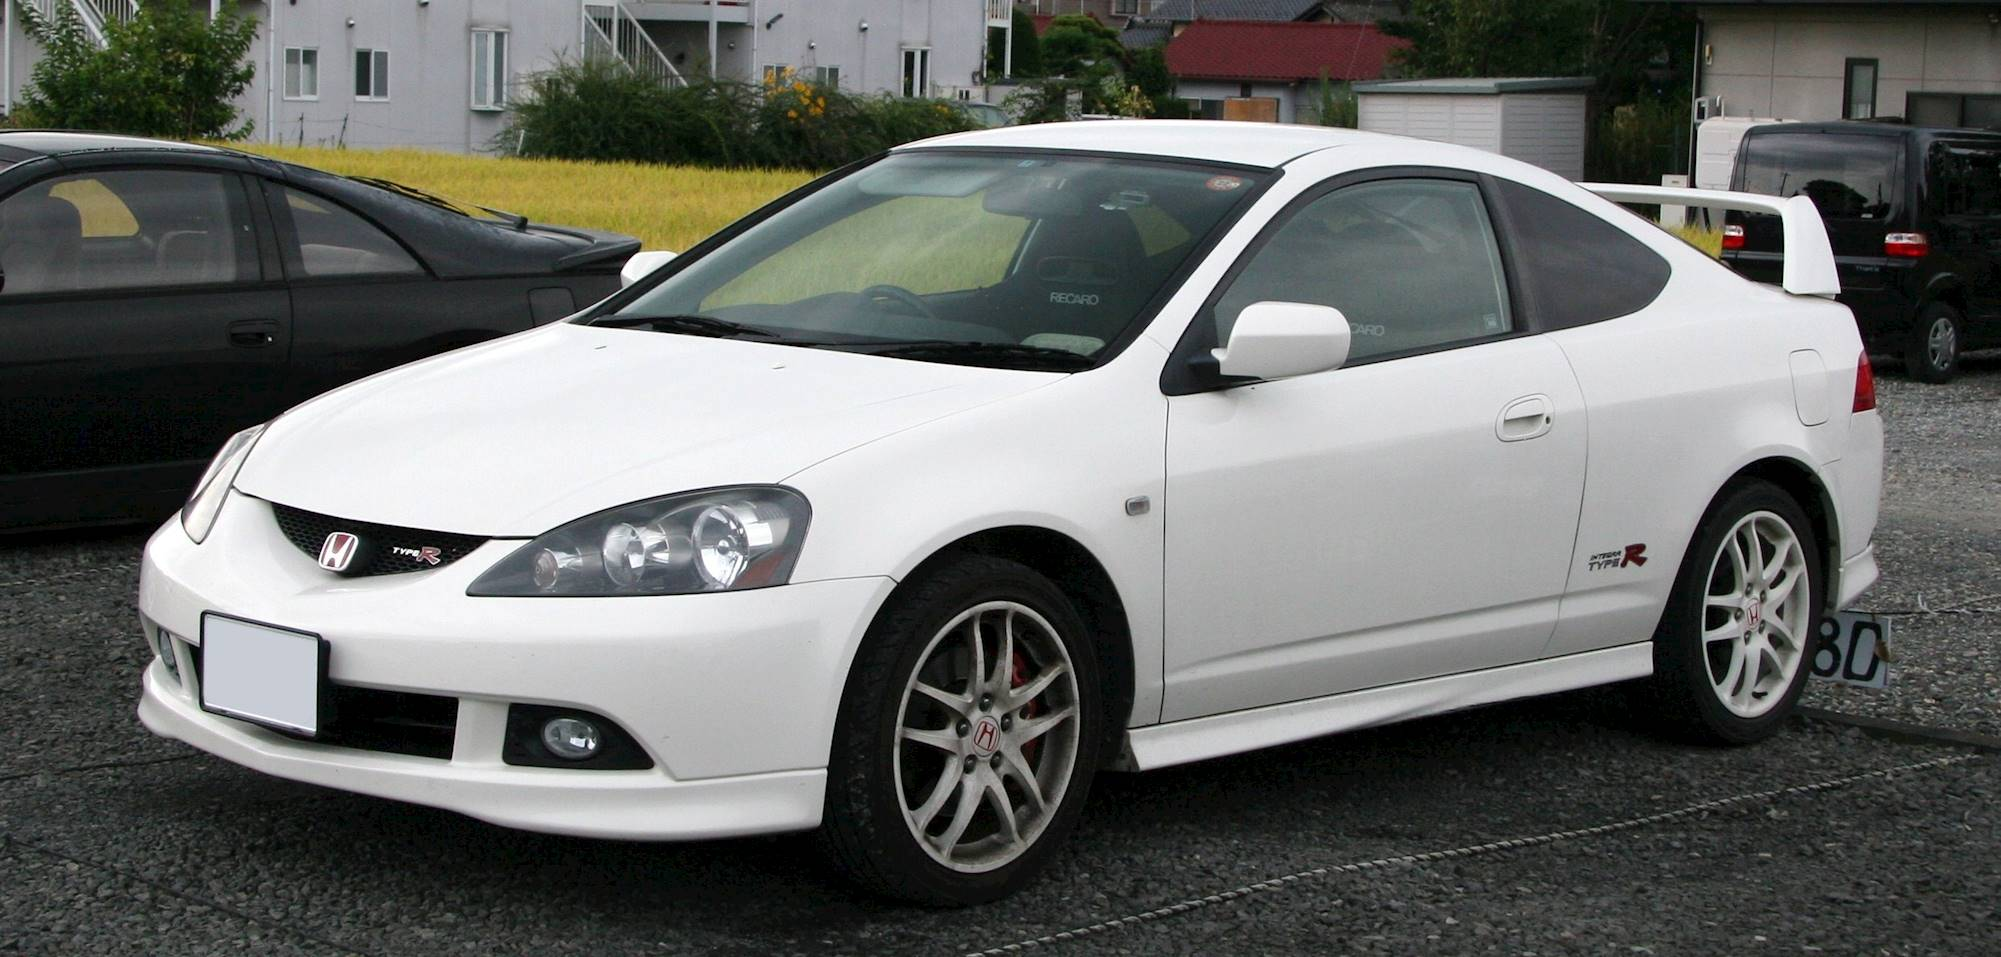 Acura RSX Base Dr Hatchback L Auto - 2003 acura rsx base